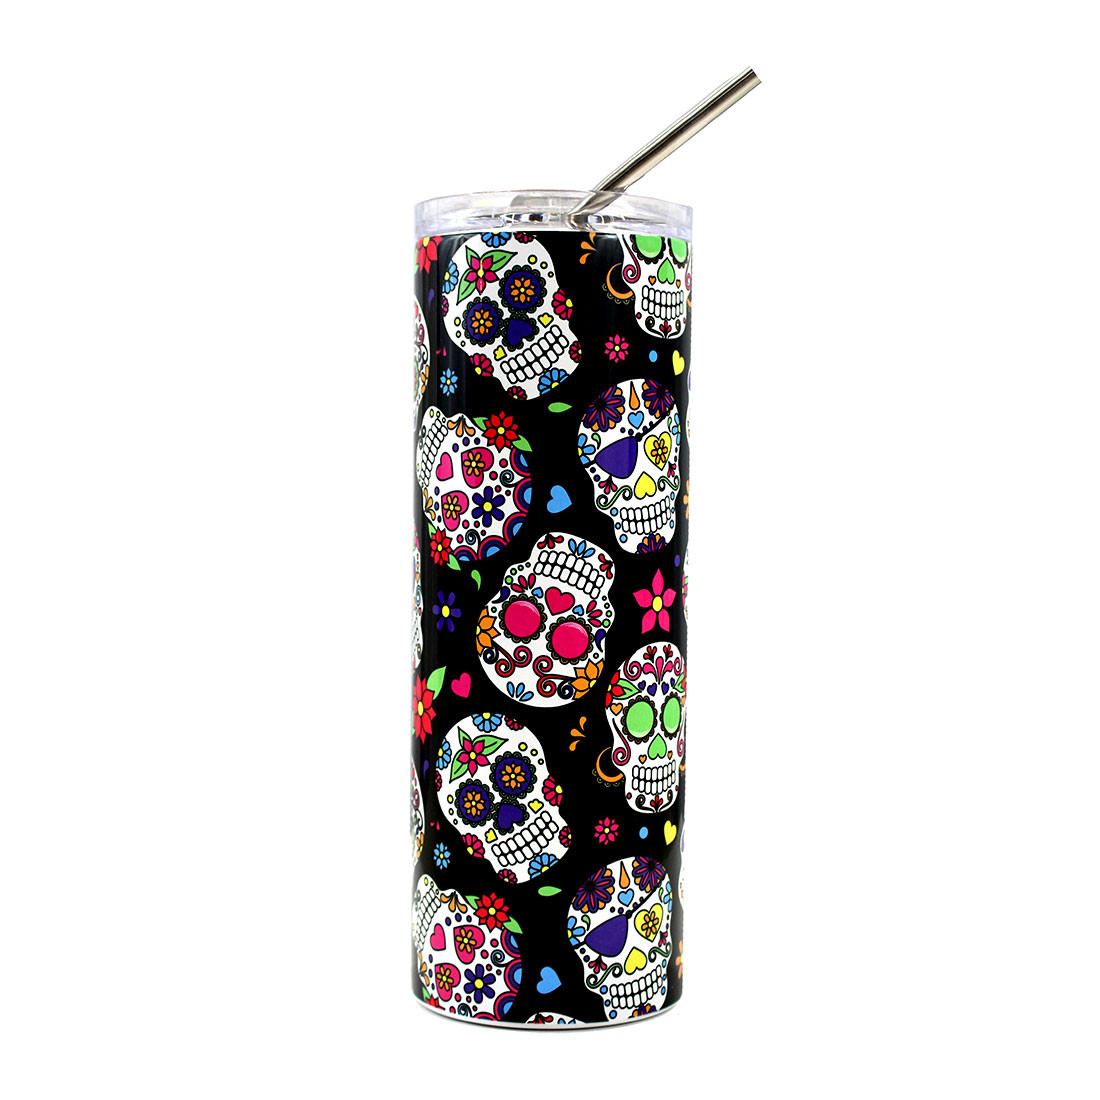 20oz. colorful skulls stainless steel tumbler with metal straw.